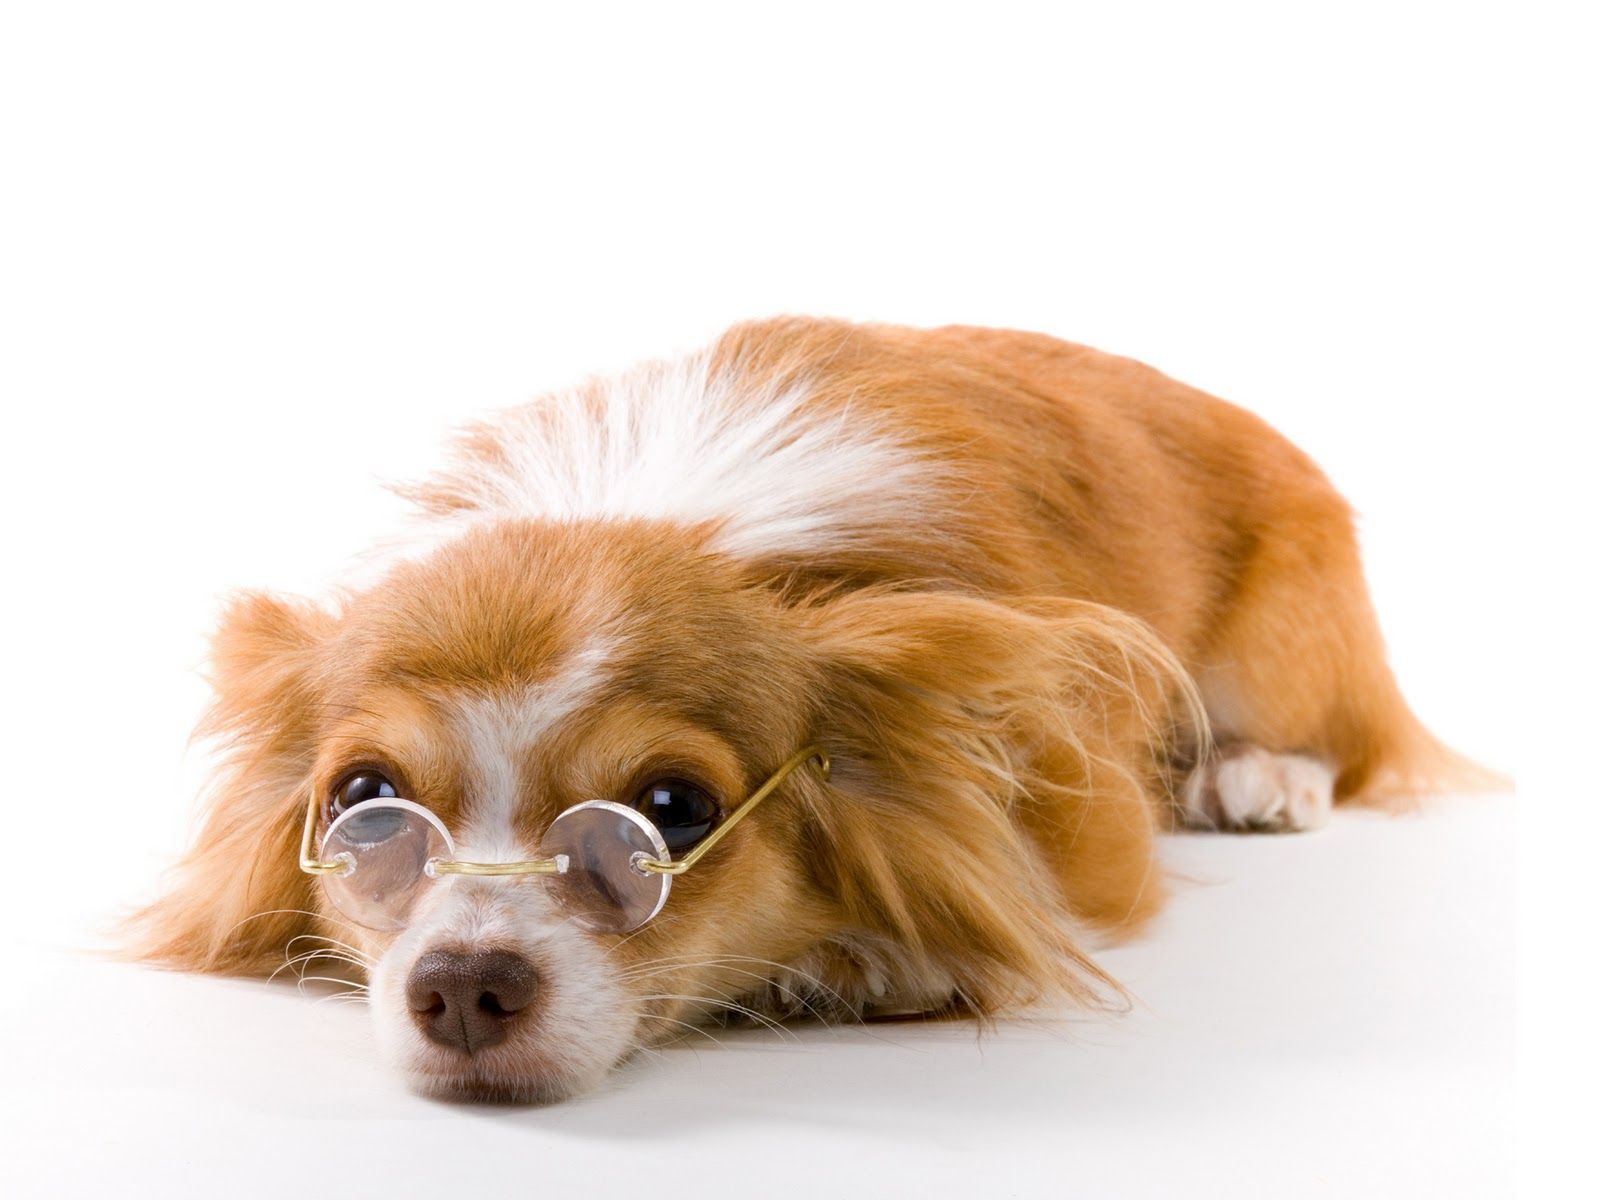 Funny Dog Wearing Glasses Wallpaper Background 6508 Wallpaper